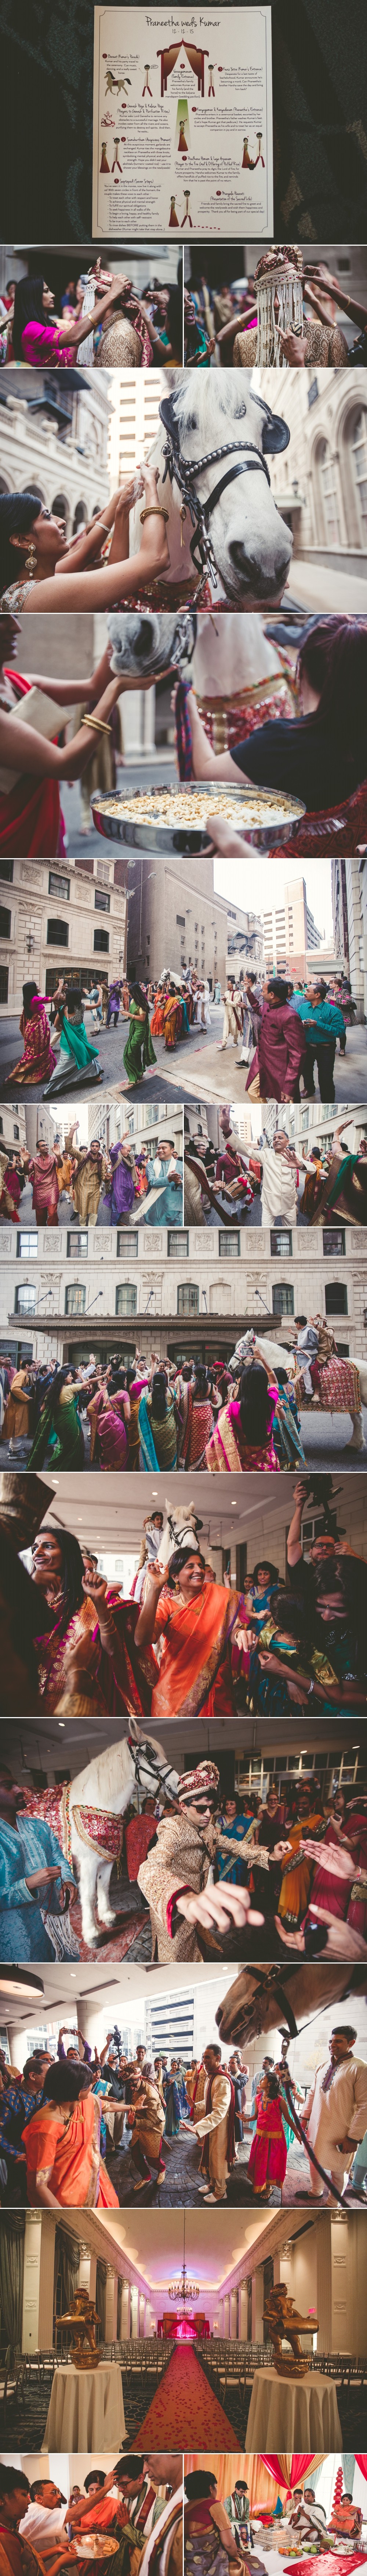 jason_domingues_photography_best_photographer_indian_wedding_st_louis_kansas_city_marriott_grand_3.jpg